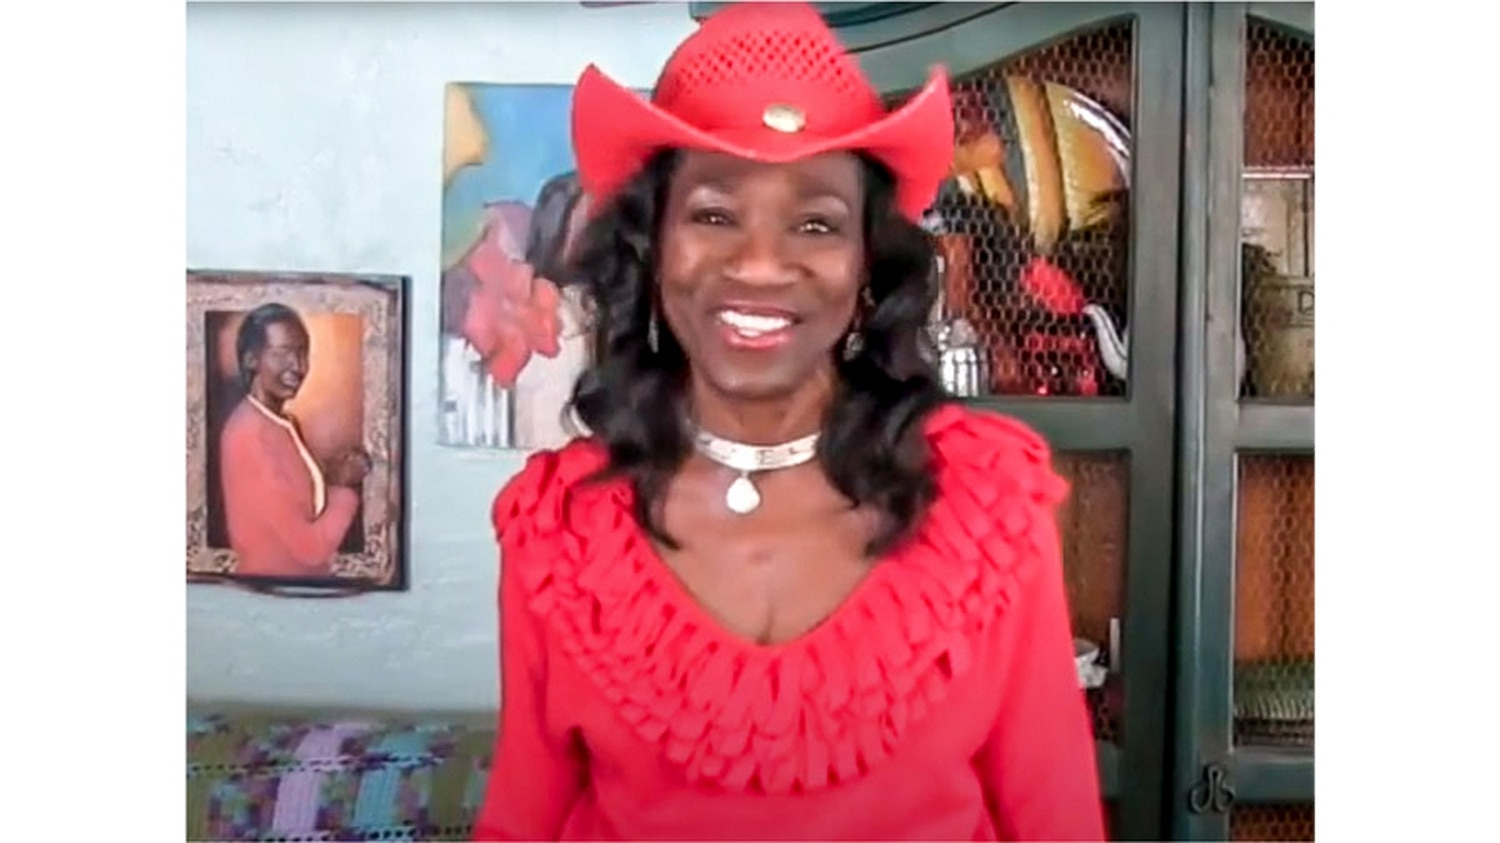 Wanda Ross Padilla is a Santa Fe holistic coach and former director of the local branch of the NAACP.